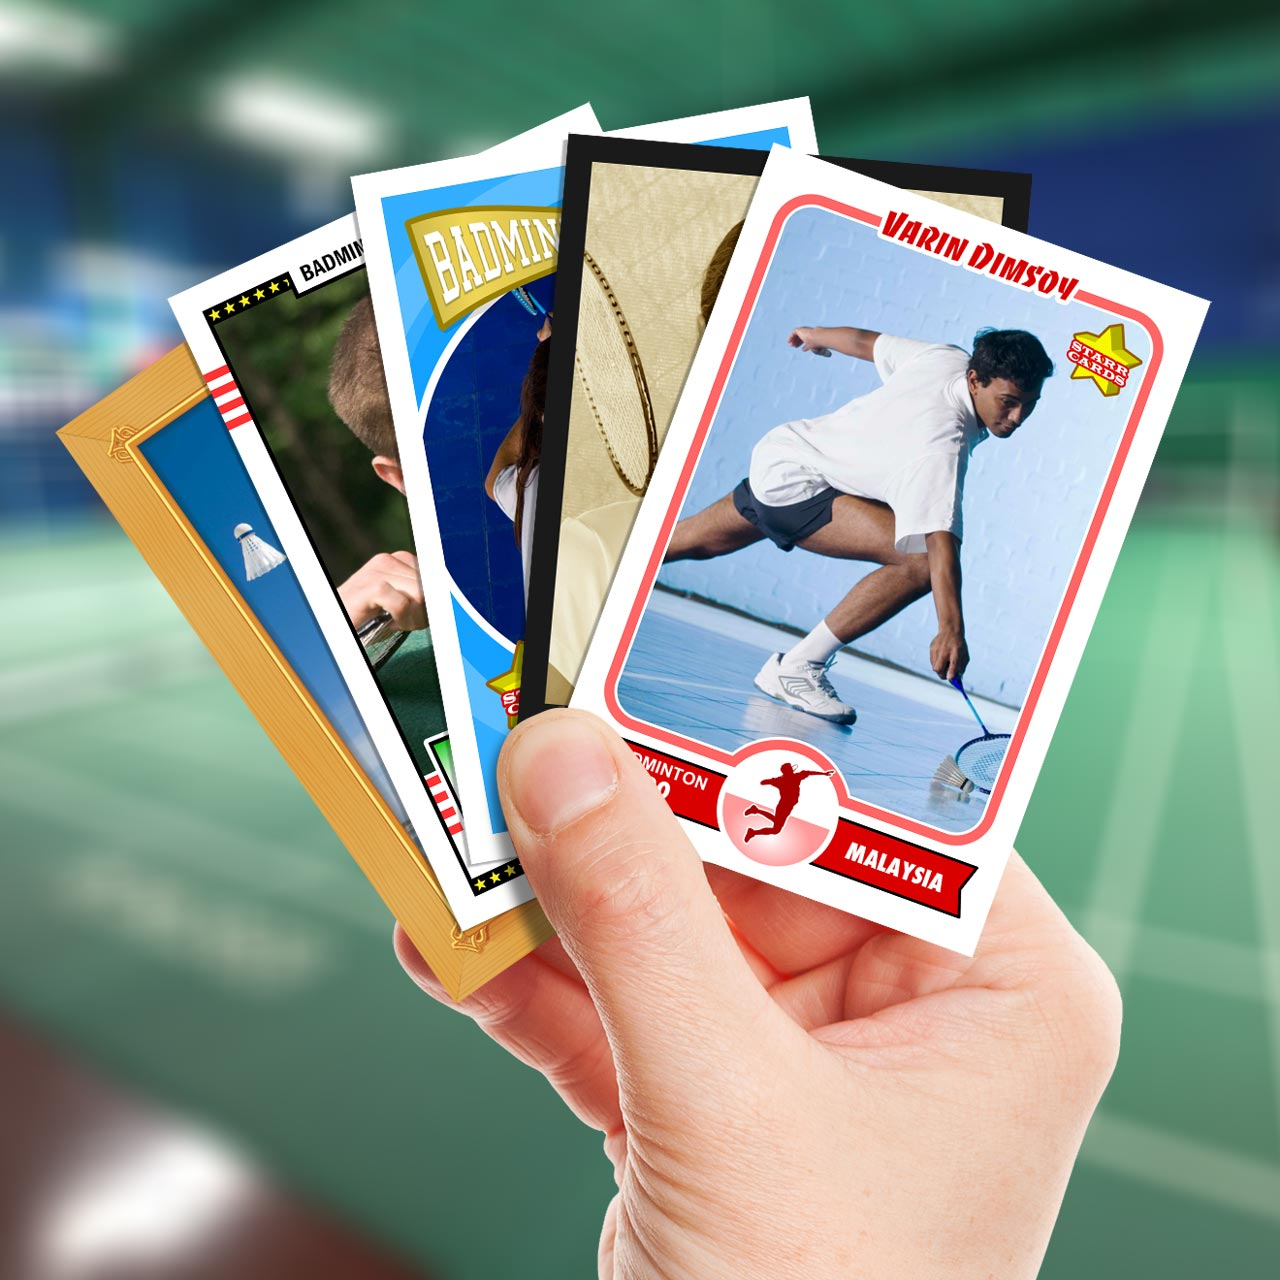 Make your own badminton card with Starr Cards.